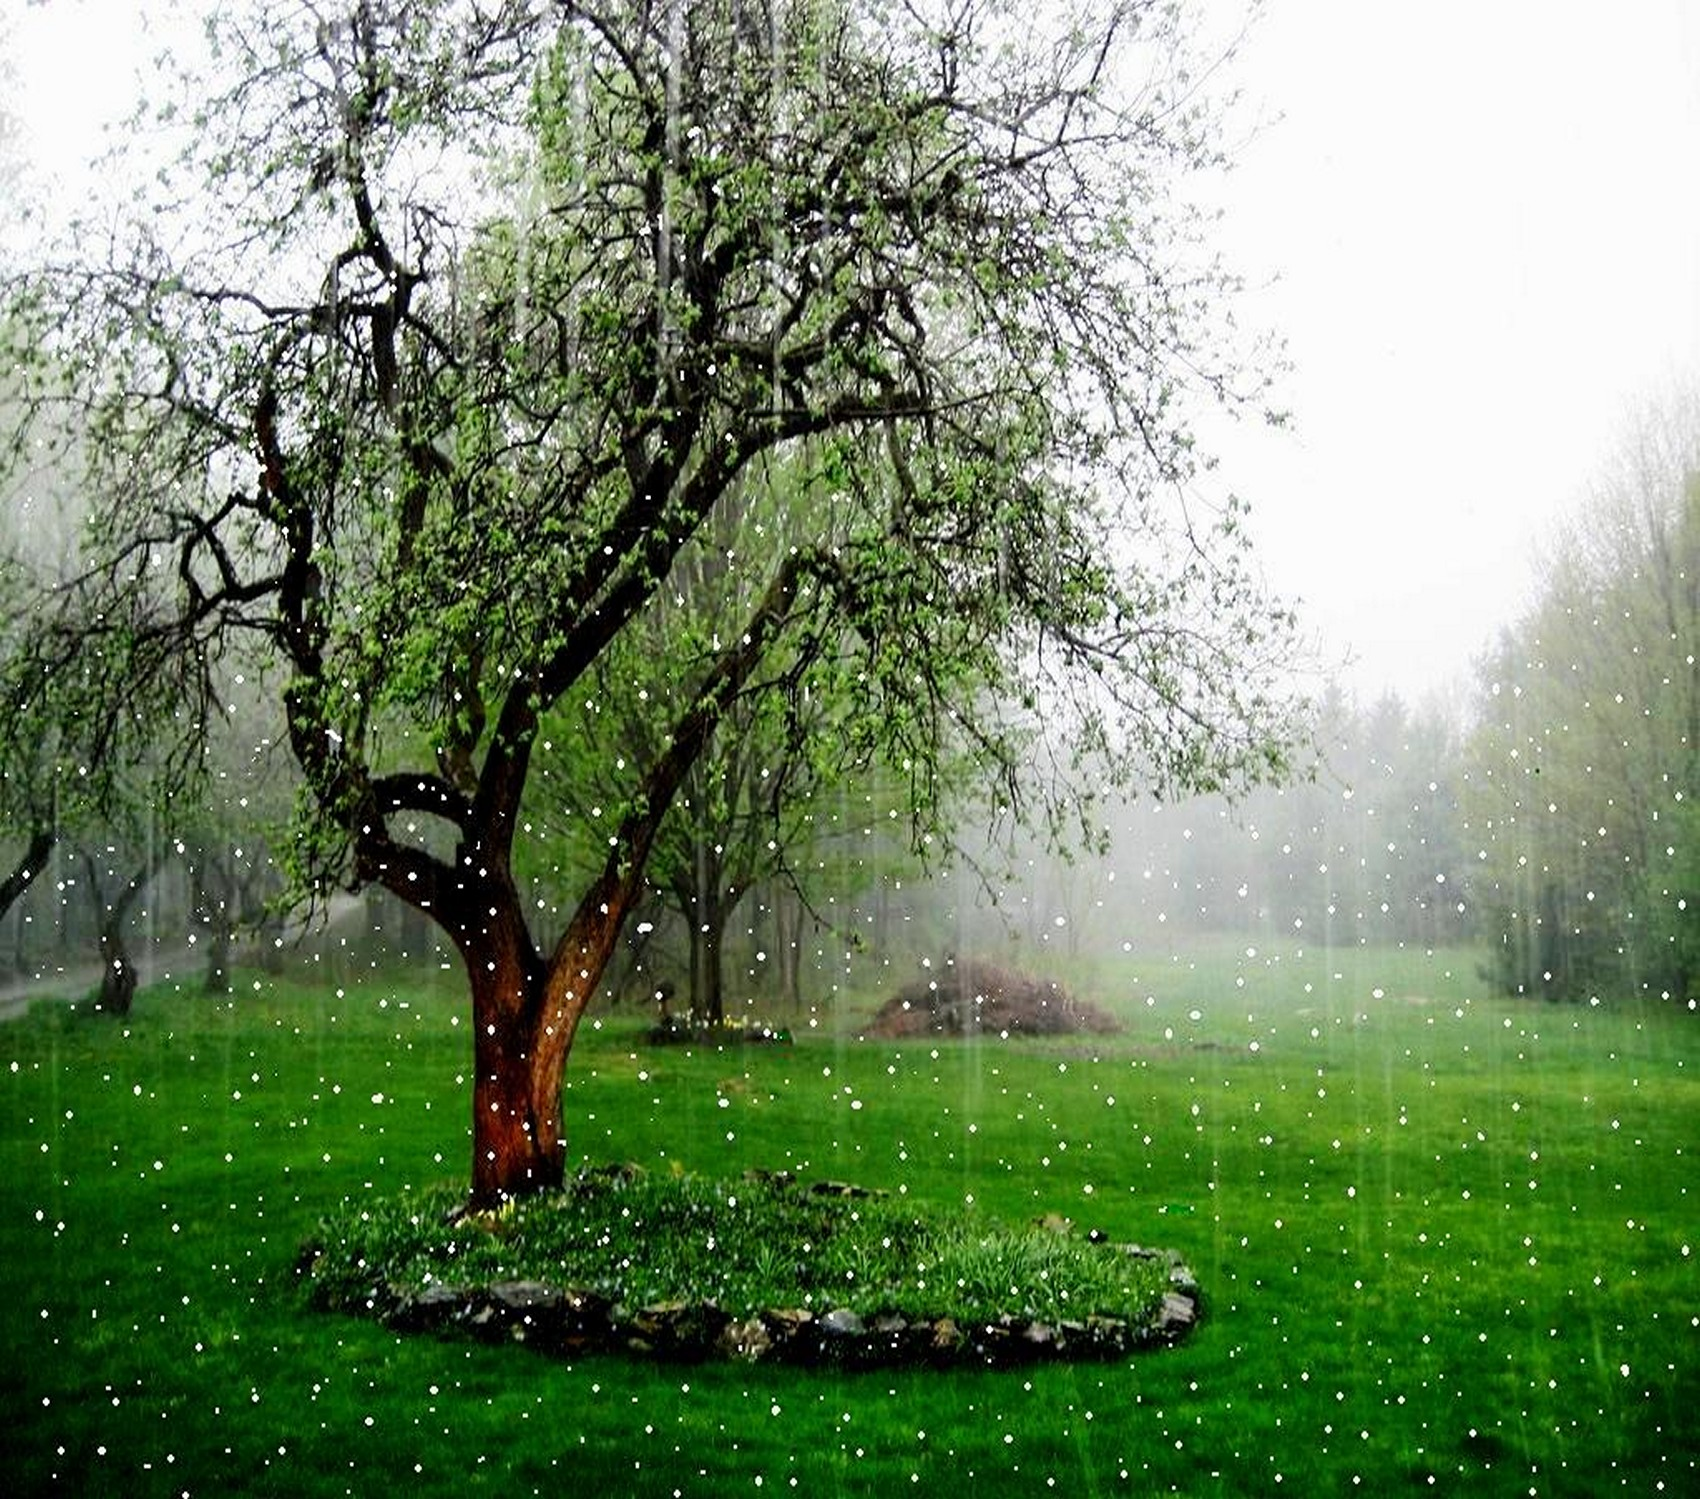 Rainy Day HD Wallpapers Pictures Images Backgrounds Photos 1700x1499